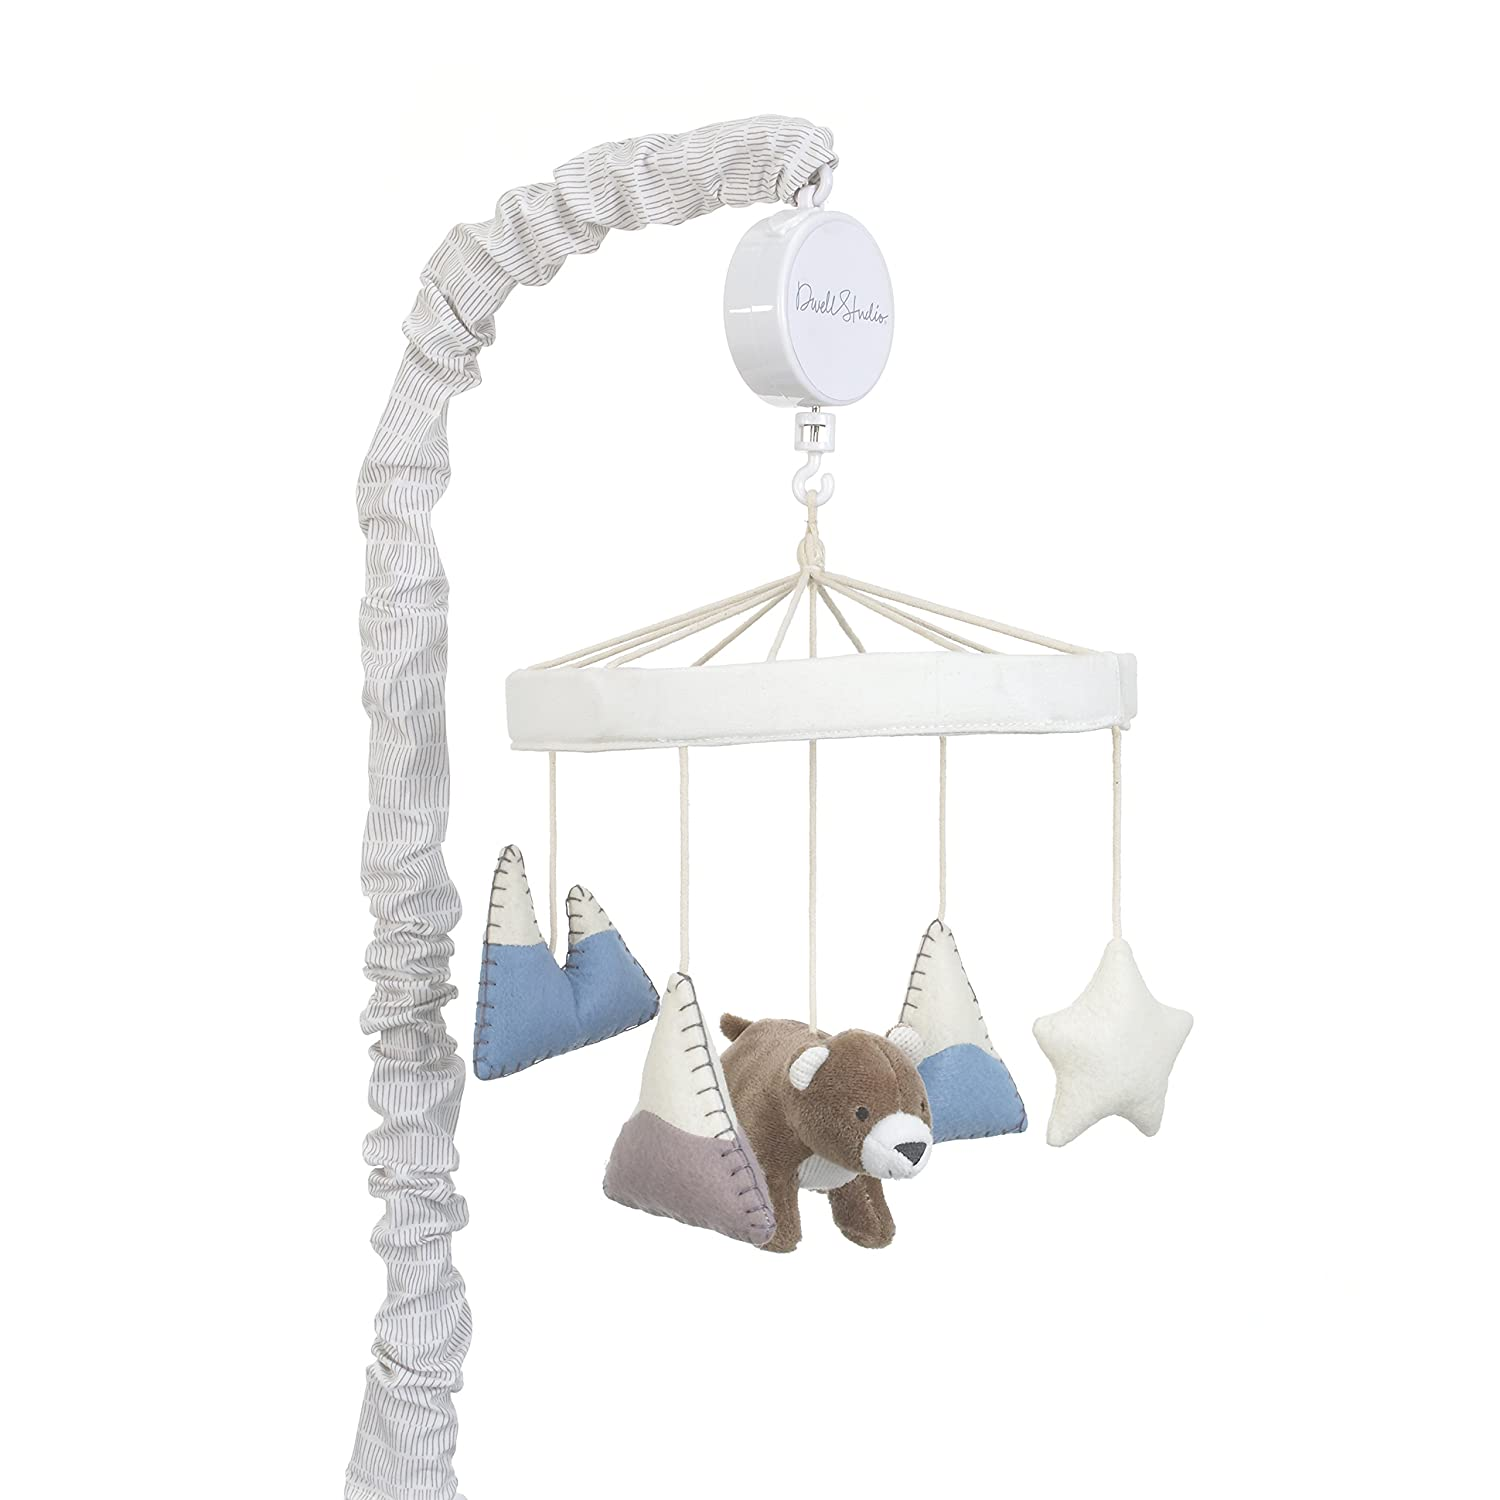 Dwell Studio Safari Skies Animal/Jungle Musical Mobile, Blue/Gray Crown Crafts Inc 2796079